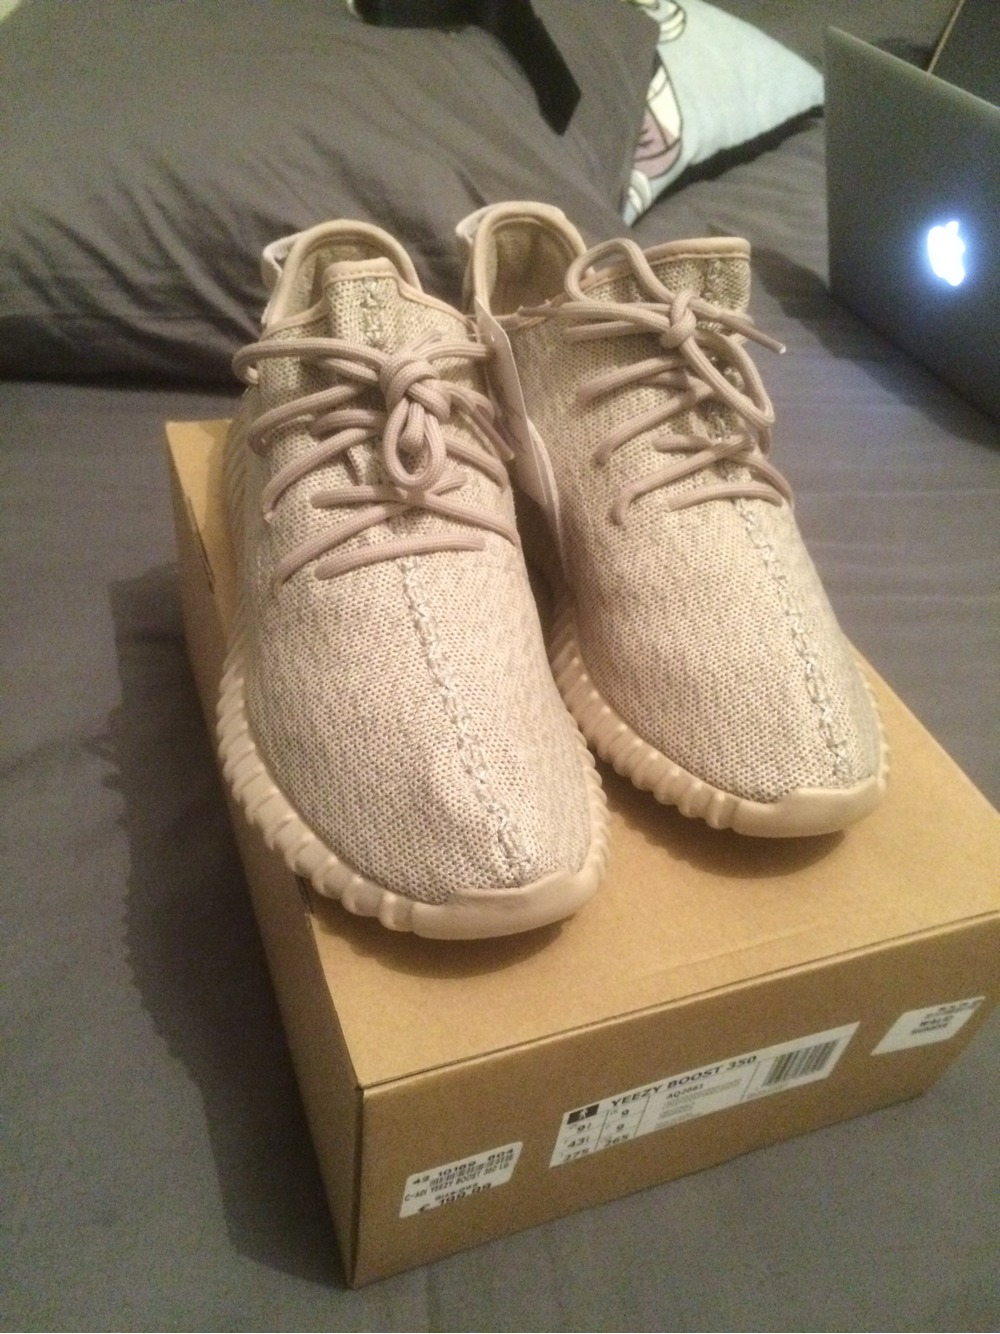 1bb6db3492c7b 89% Off Yeezy 350 for Sale cream Retail Price - Yeezy 350 Boost Sale